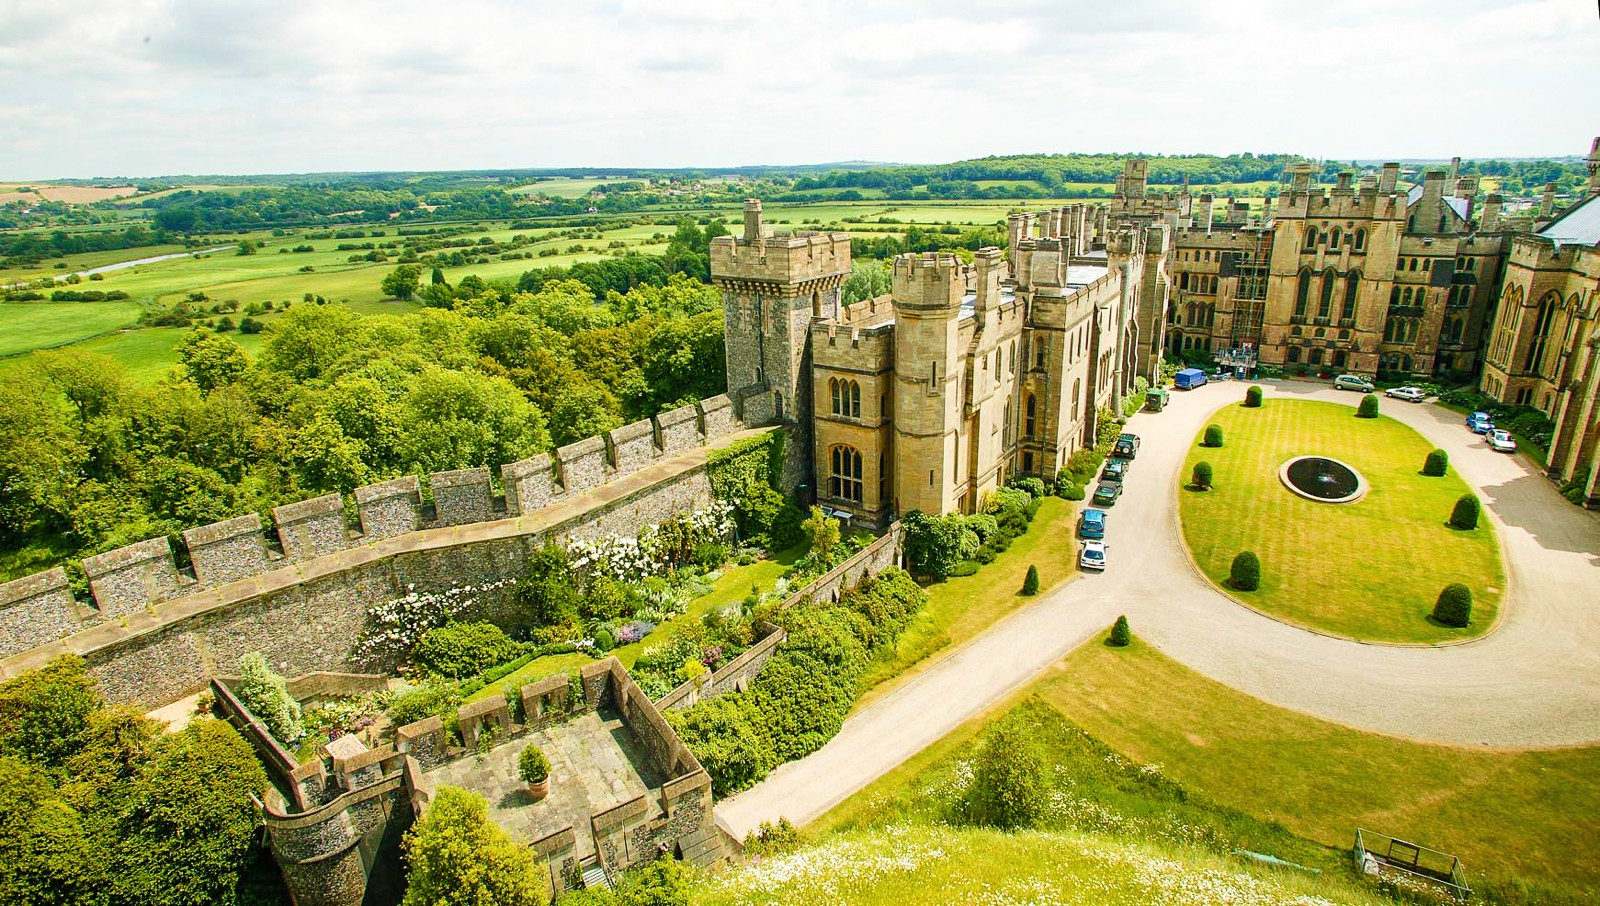 15 Fairytale Castles You Must Visit In England (9)